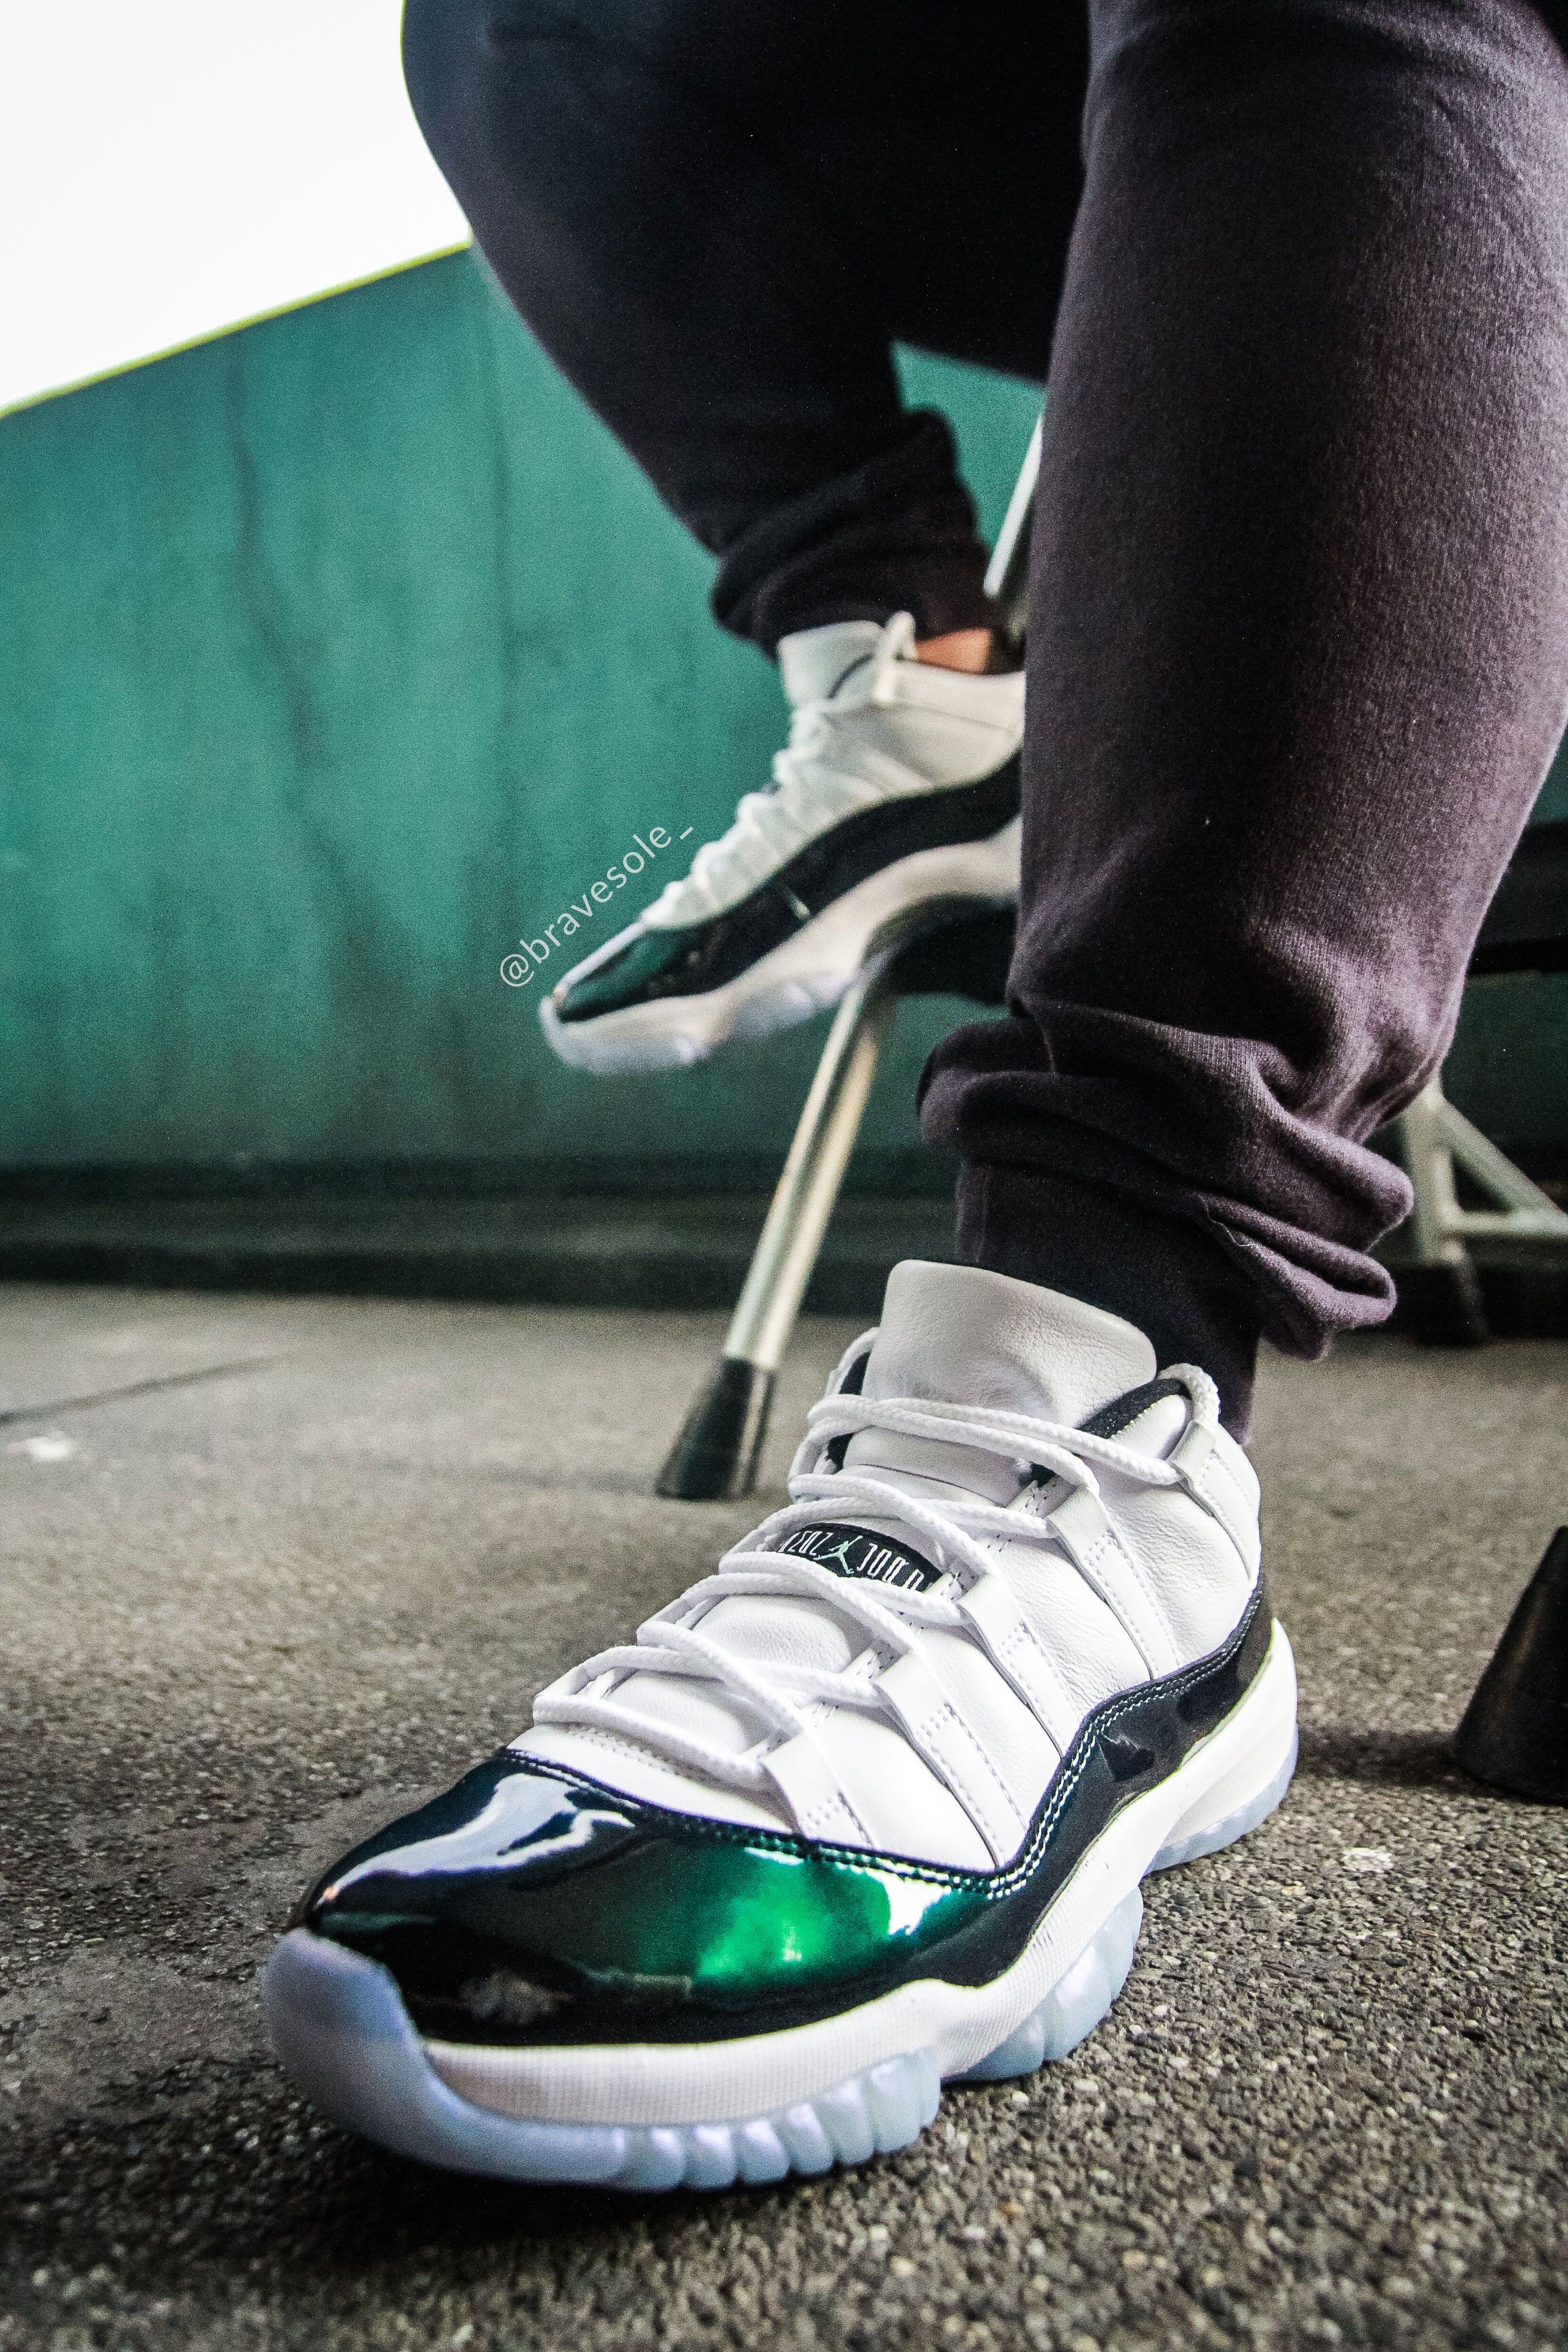 602aad29a96048 Air Jordan 11 Retro Low - Iridescent